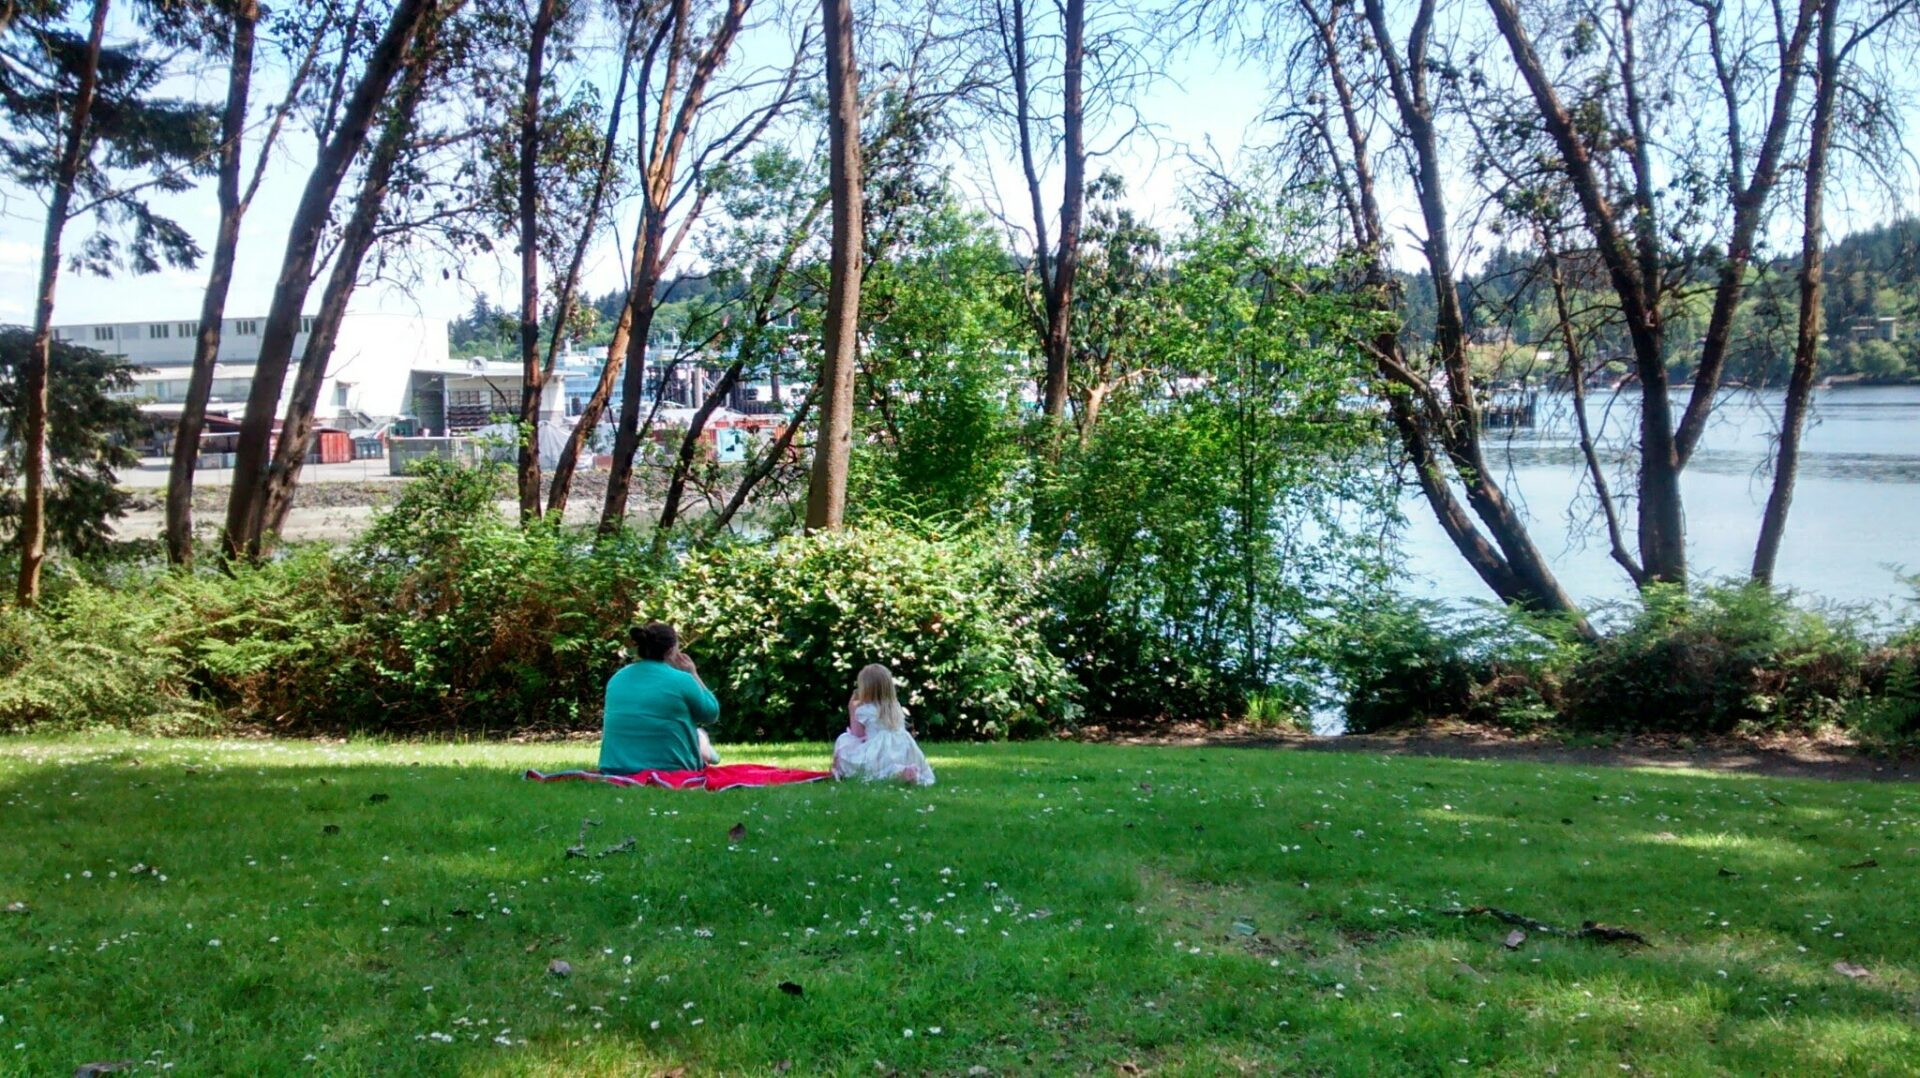 A woman and a child sitting on a picnic blanket on the grass. There are trees around them and a shoreline beyond.